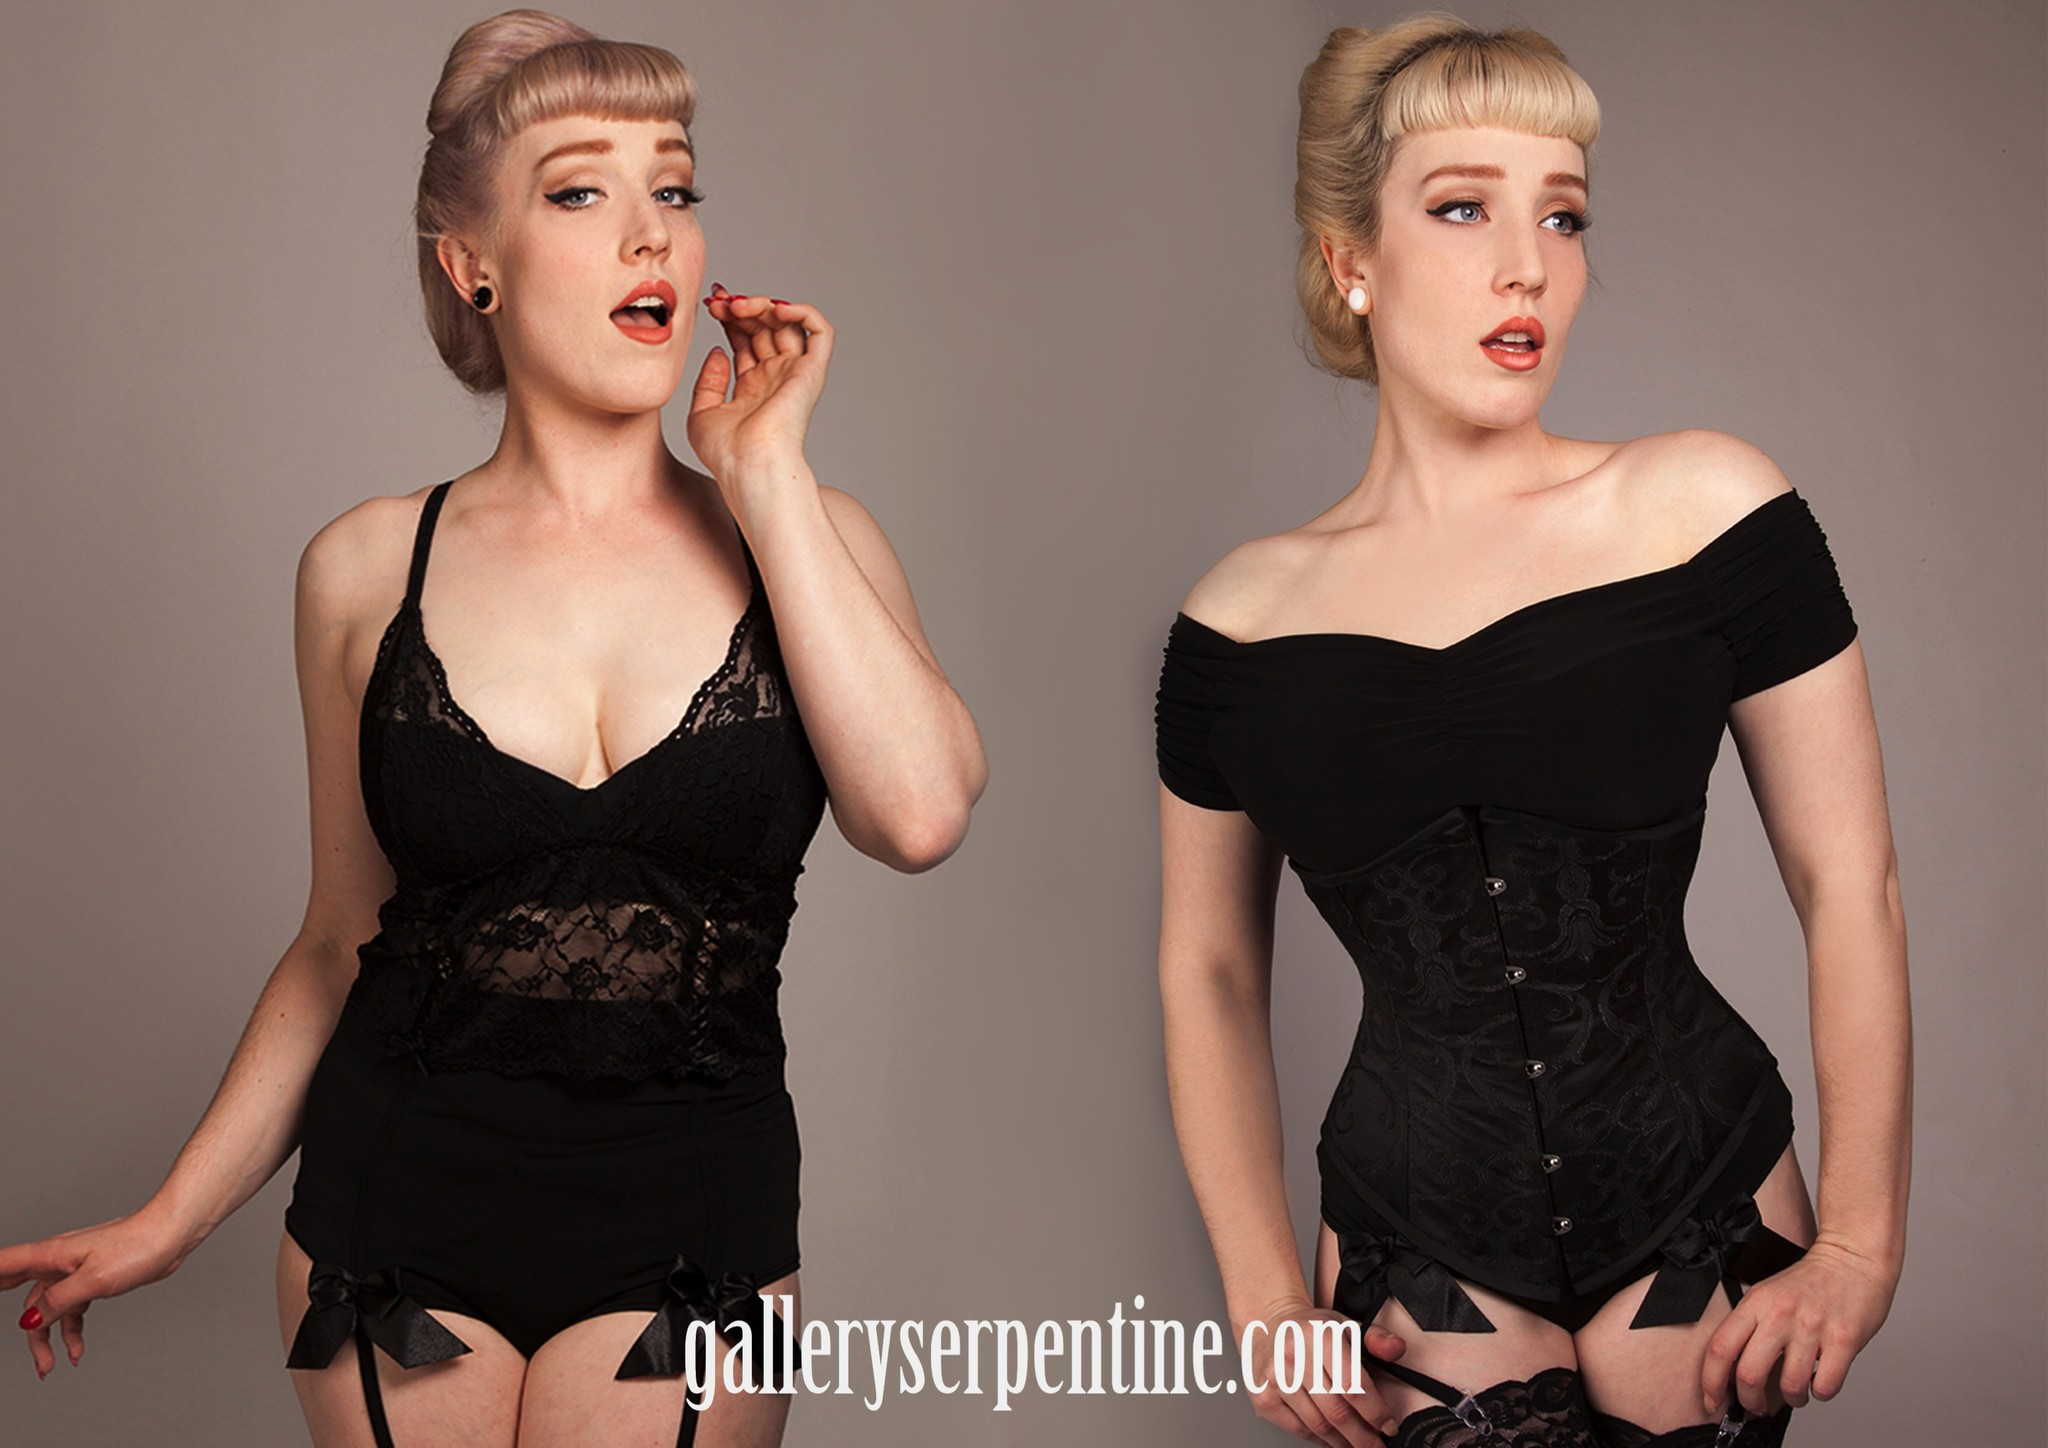 You can have a free of charge personalised corset fitting in Newtown, Sydney this corset season